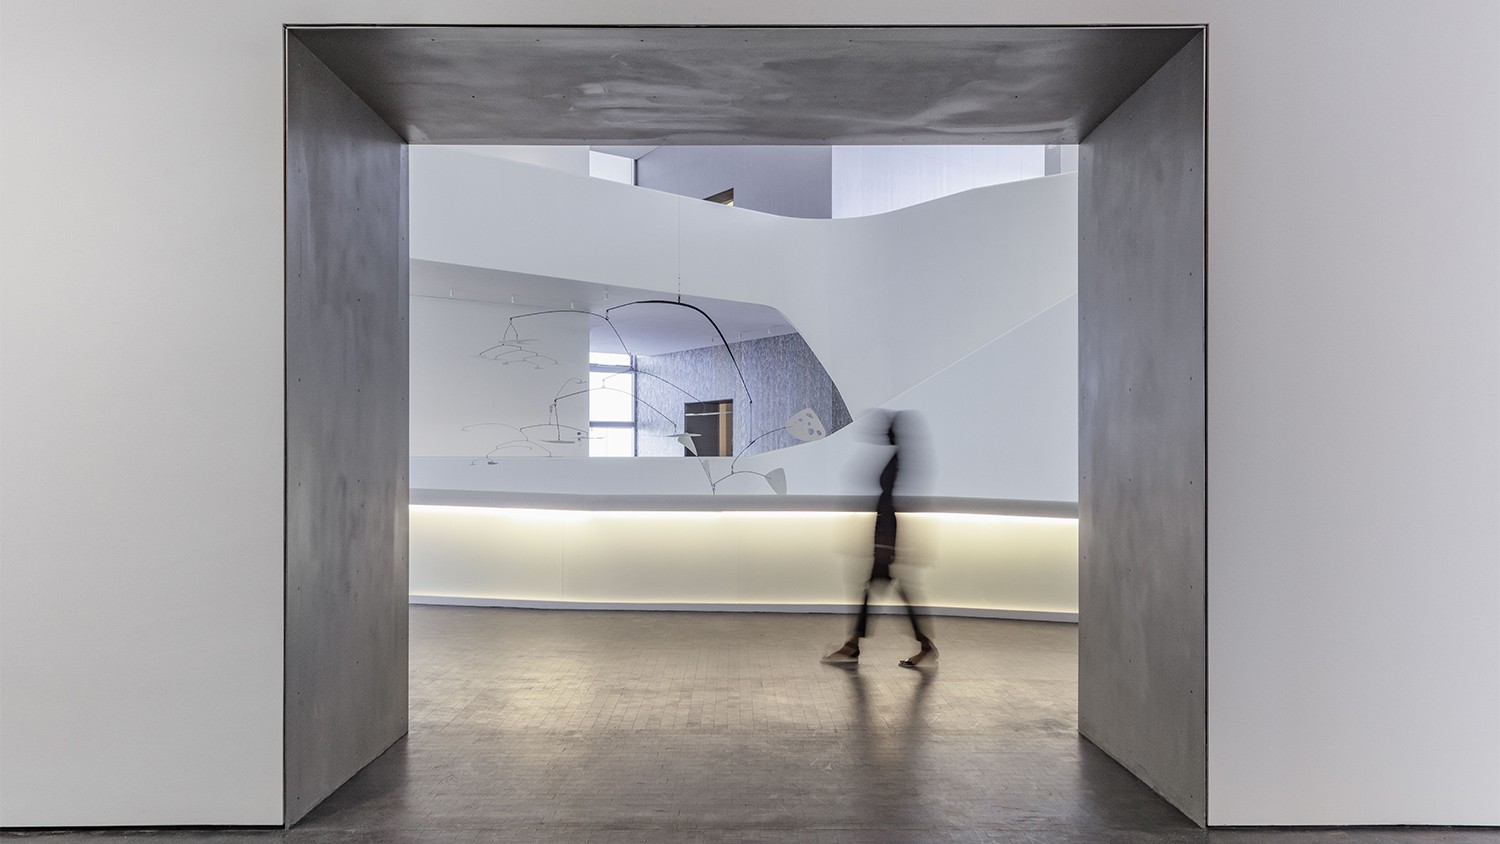 https://stevenholl.sfo2.digitaloceanspaces.com/uploads/projects/project-images/interiorhall_RichardBarnes.jpg